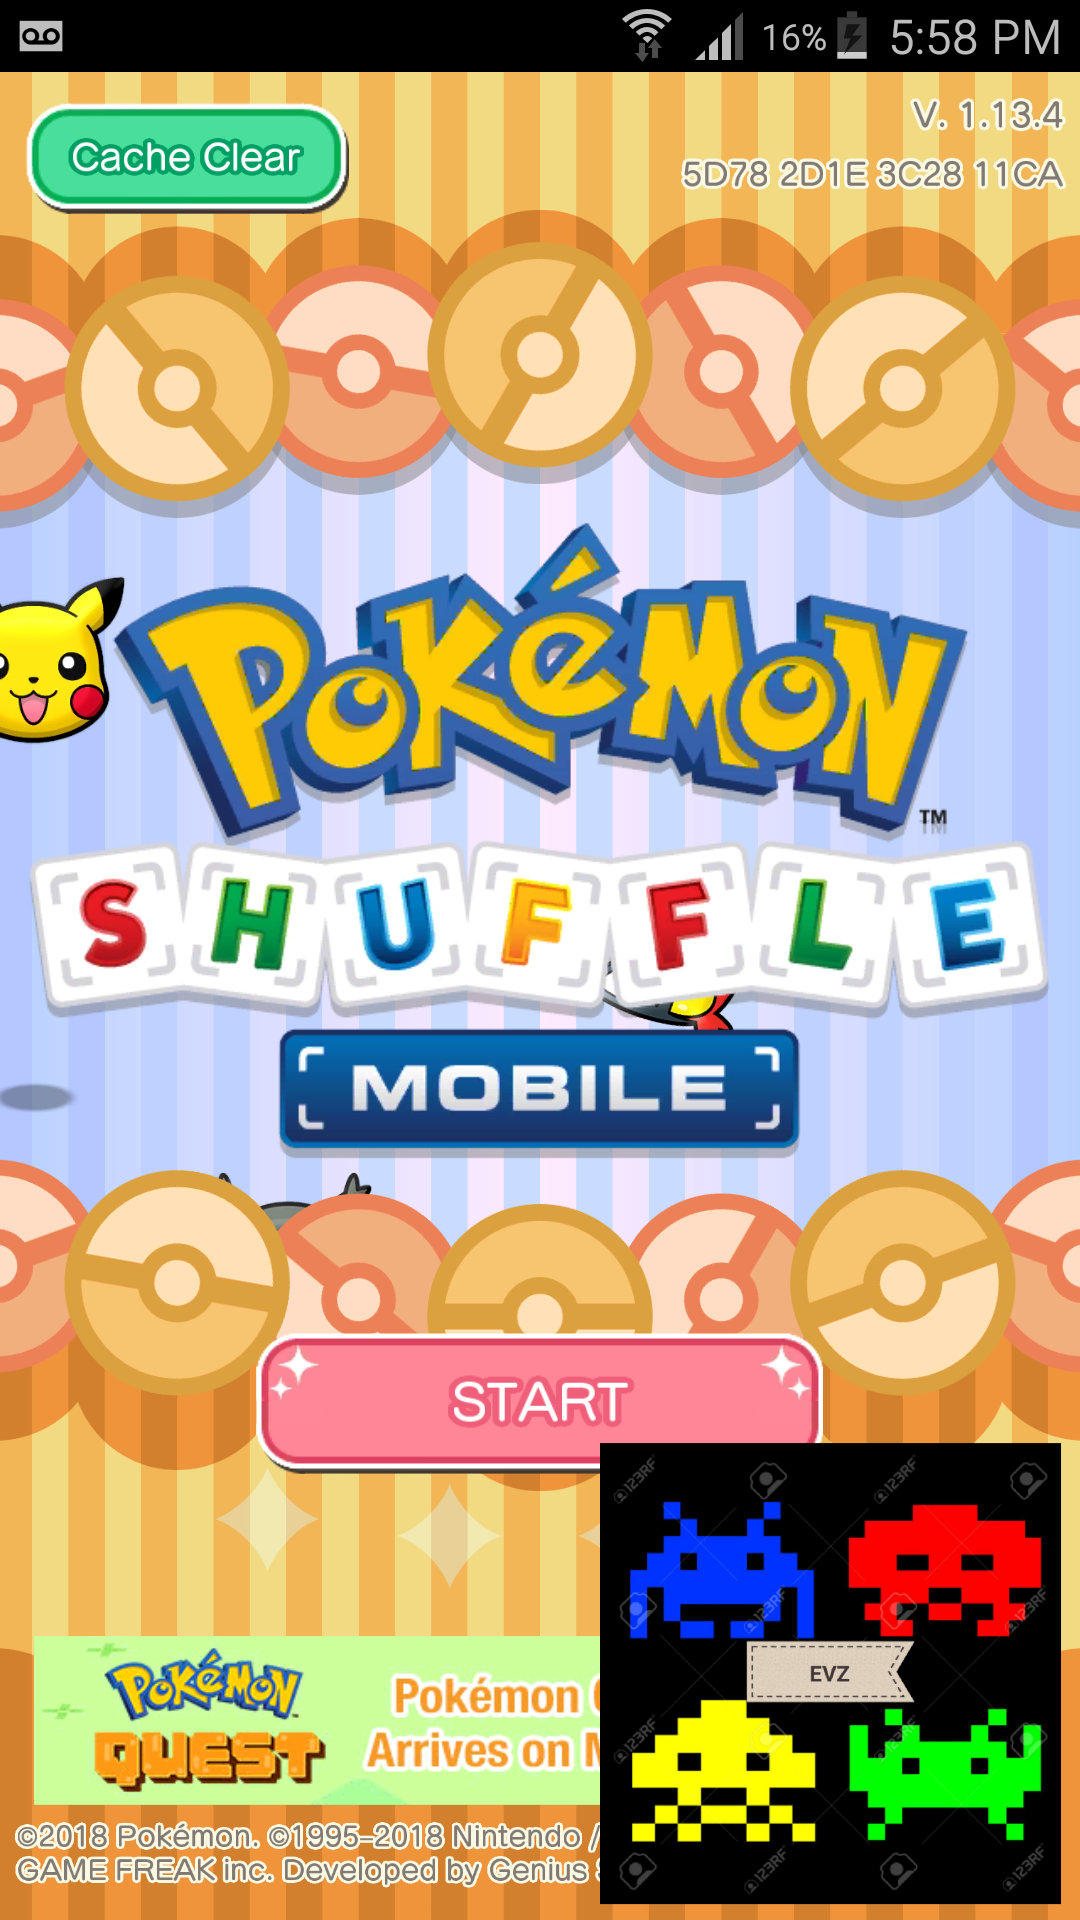 ministorm04: Pokemon Shuffle Mobile: Stage 012 (Android) 10,058 points on 2019-06-06 13:02:29